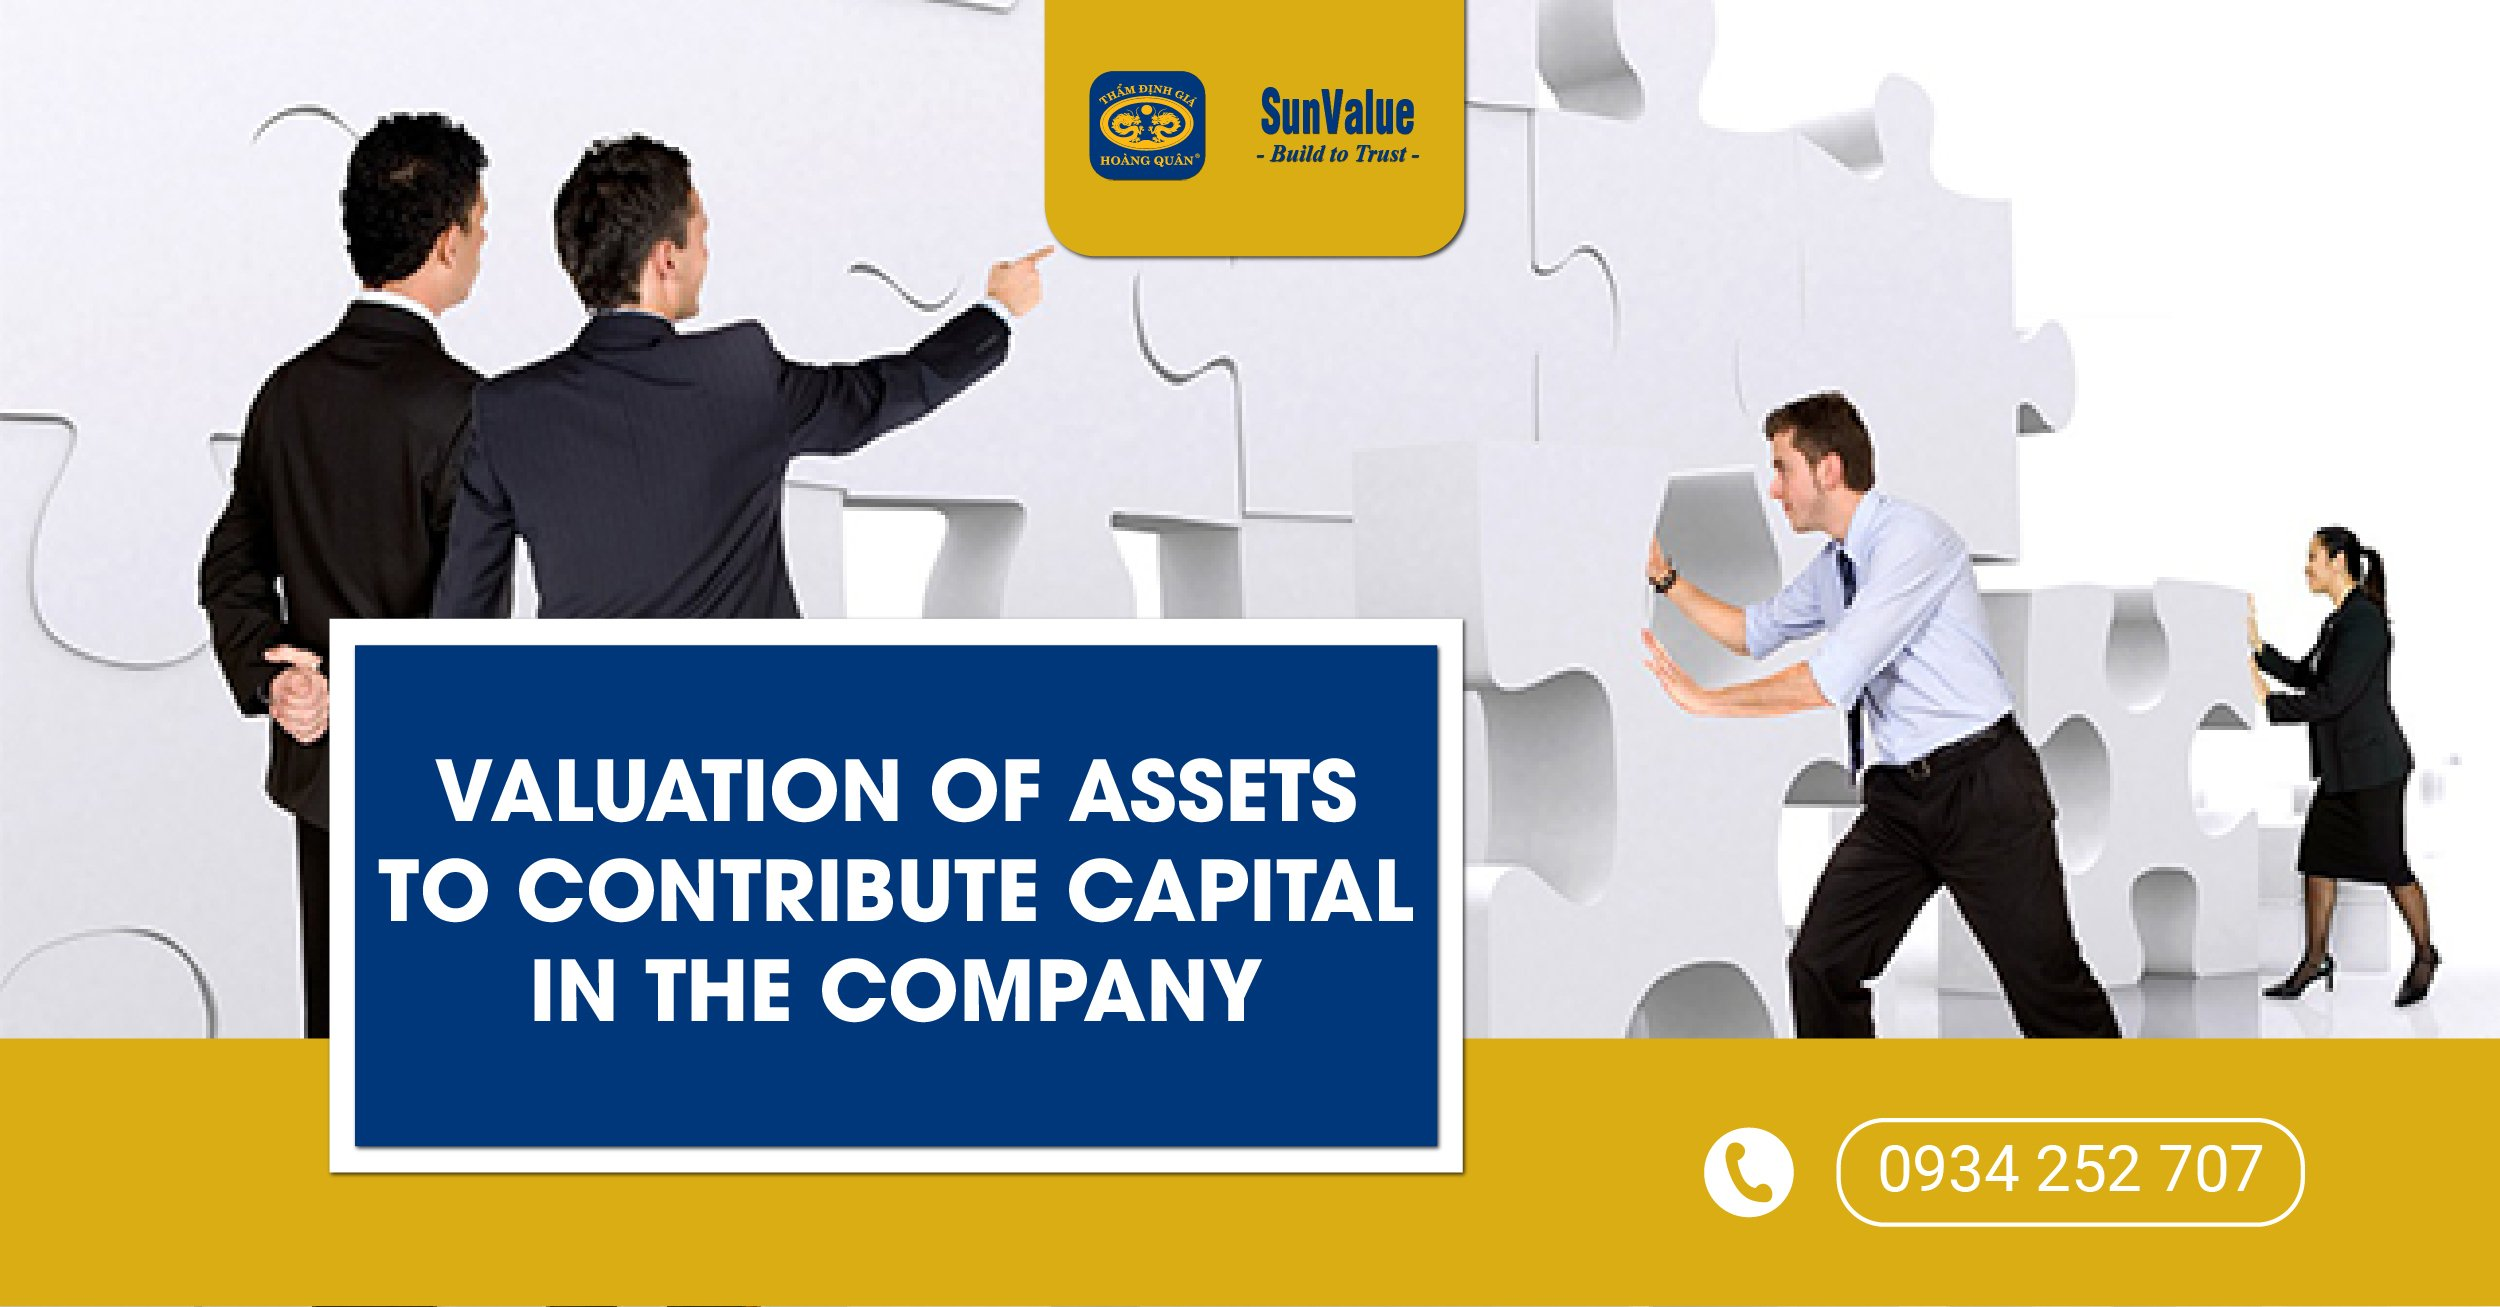 VALUATION OF ASSETS TO CONTRIBUTE CAPITAL IN THE COMPANY